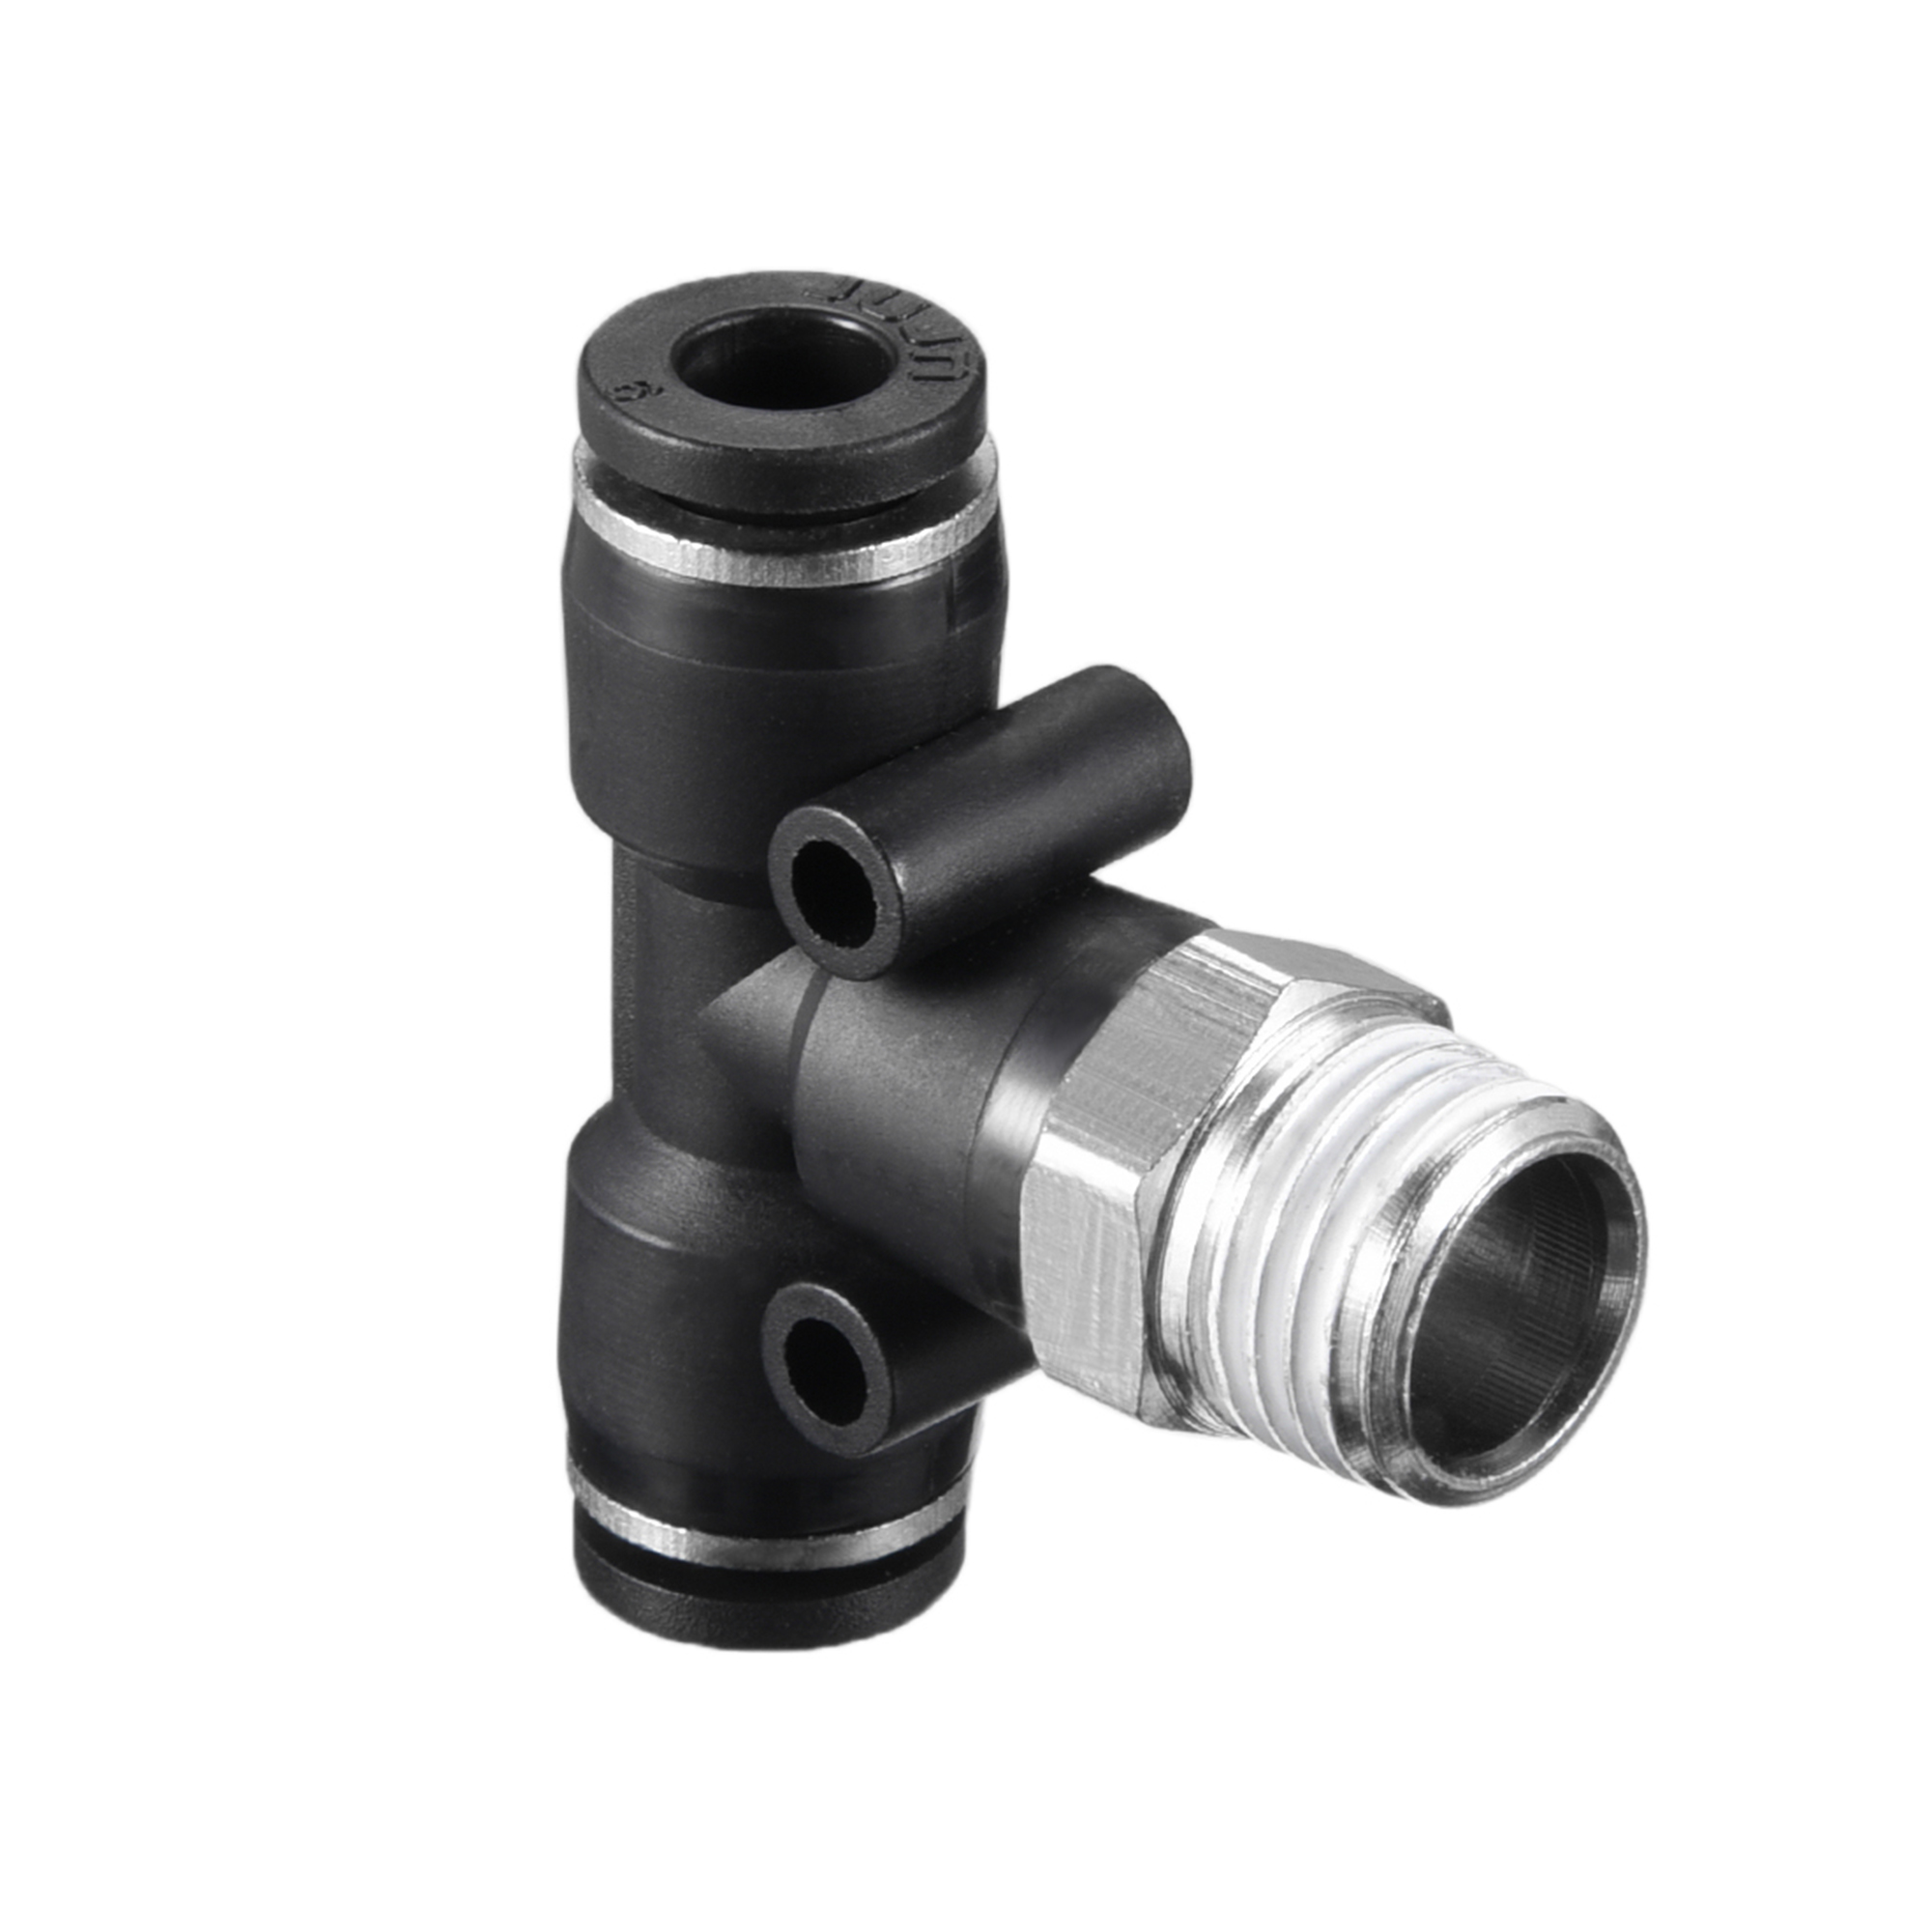 "Push To Connect Fittings T Type Thread Tee Tube Connect 15/64"" OD x 1/4"" G Male Thread Push Fit Fittings Tube Fittings P - image 2 de 4"